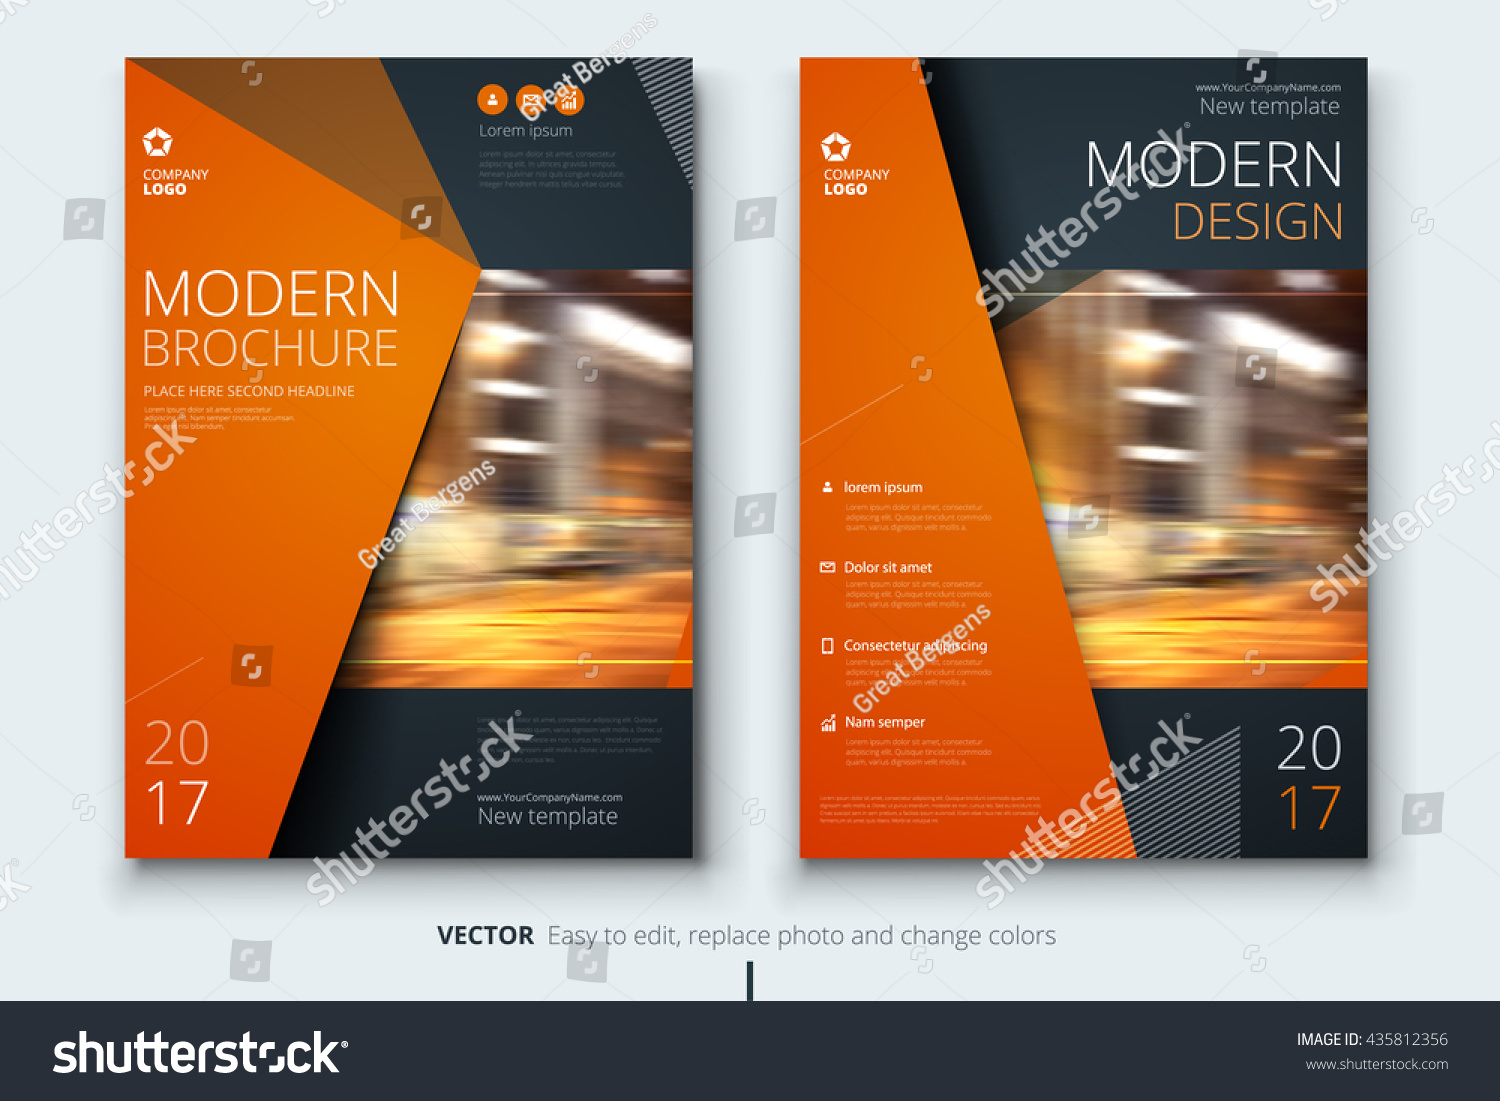 modern brochure templates - brochure template layout design corporate business stock